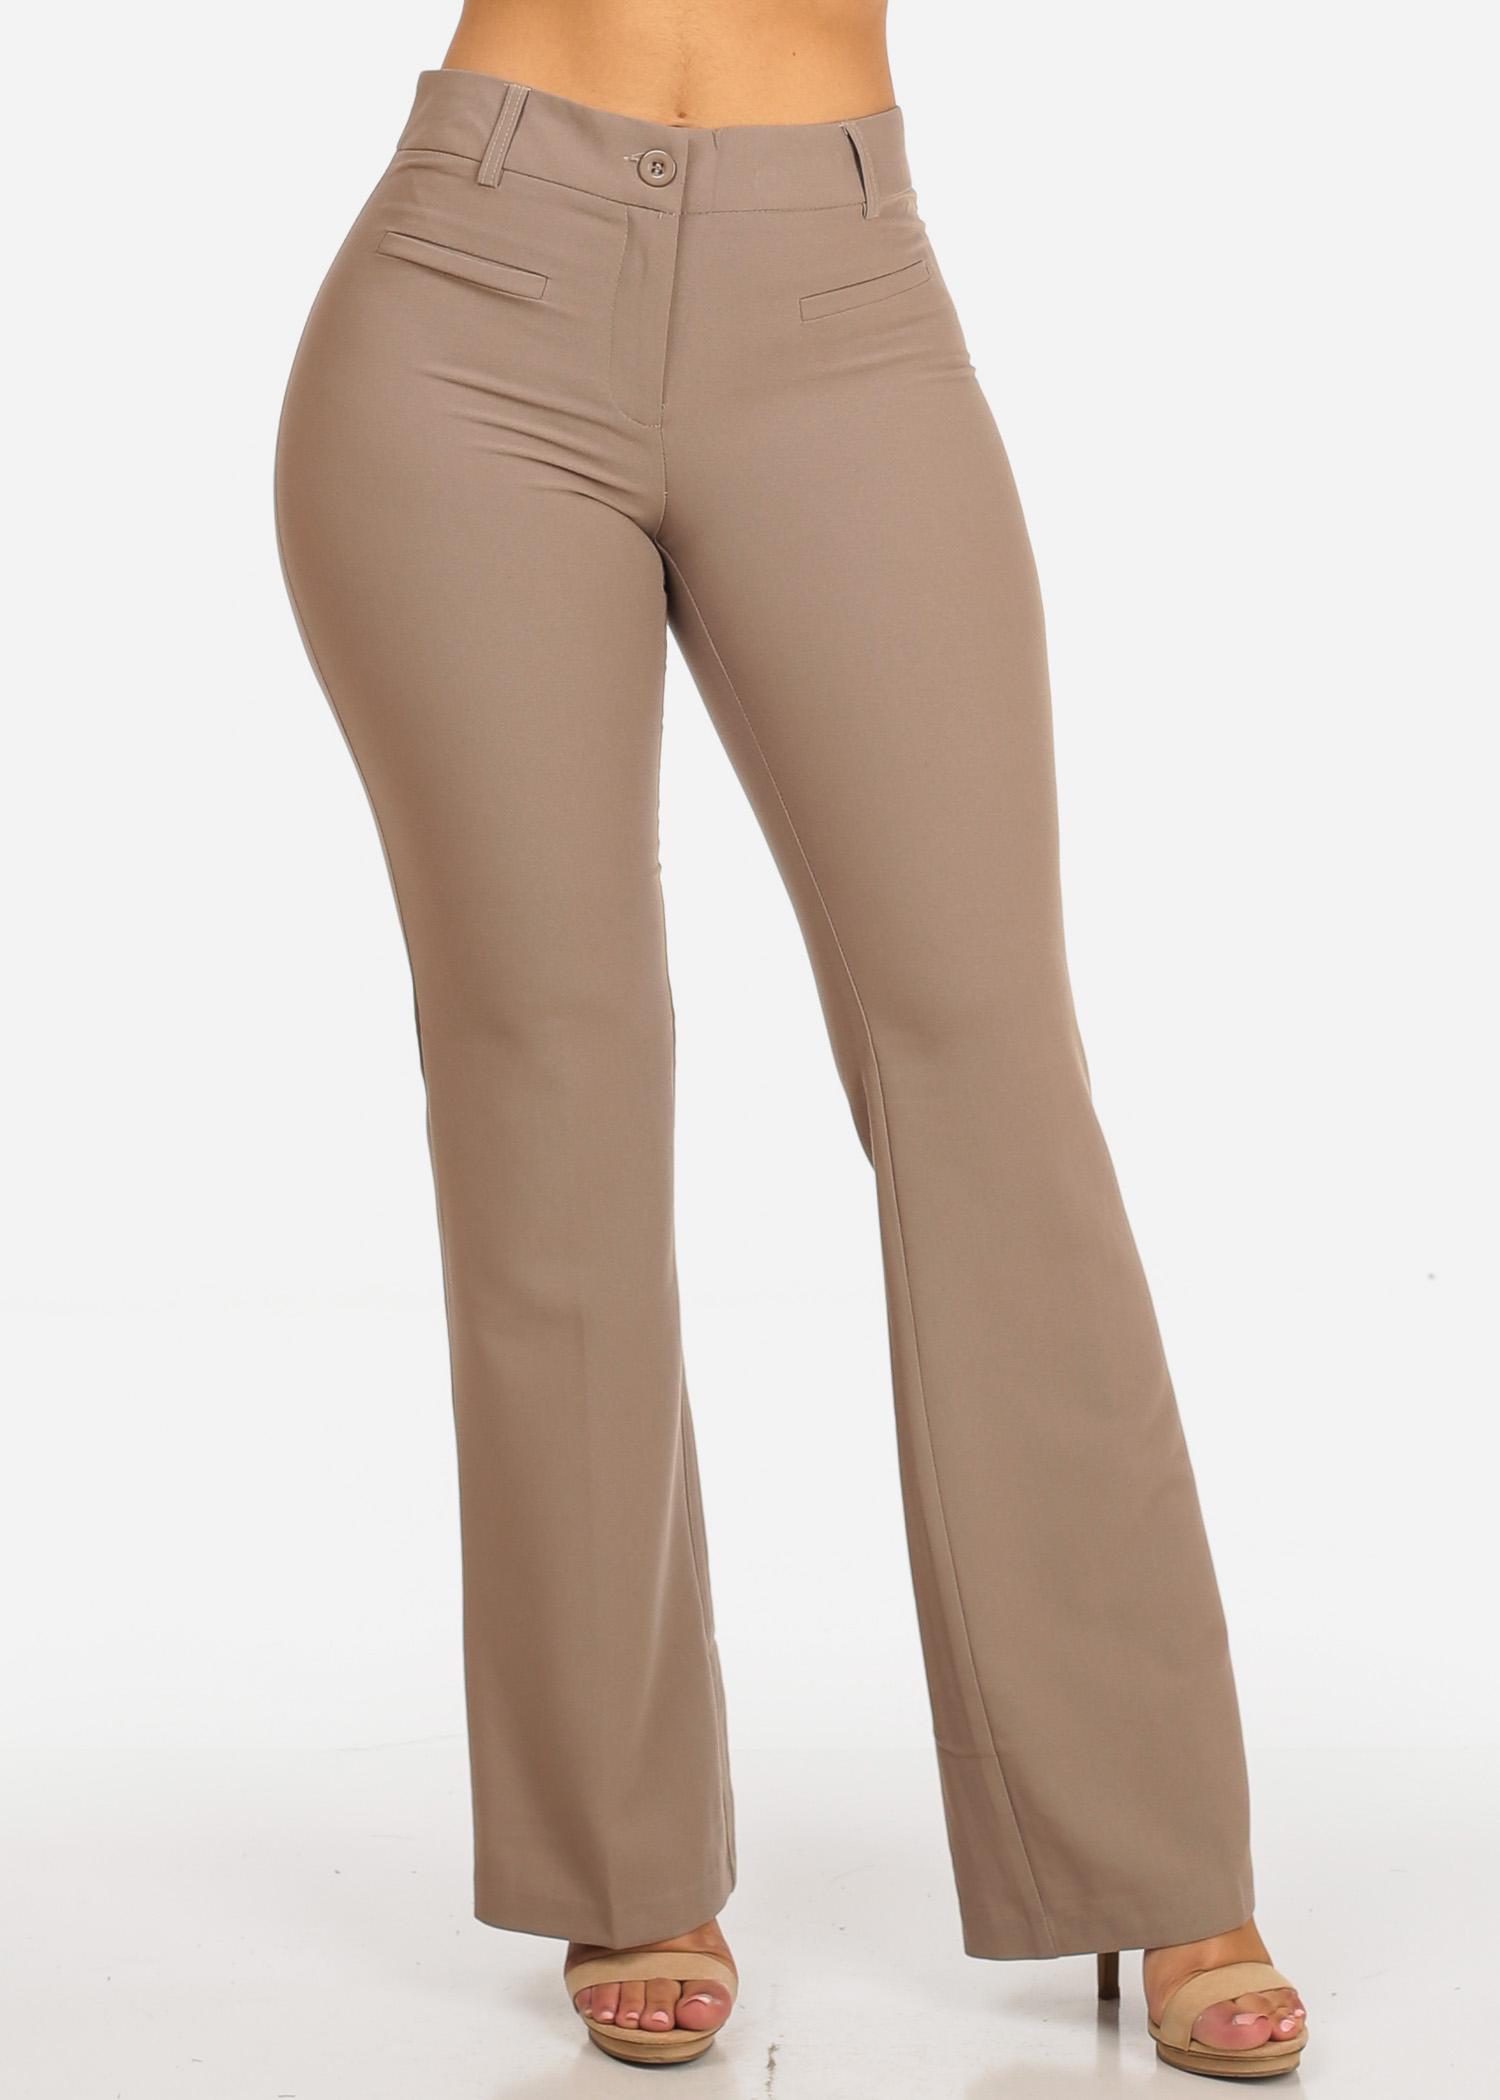 Womens Juniors Evening Wear Career Office Work Wear Mid Rise 1 Button Flared Leg Bootcut Solid Khaki Beige Dressy Pants 10036R